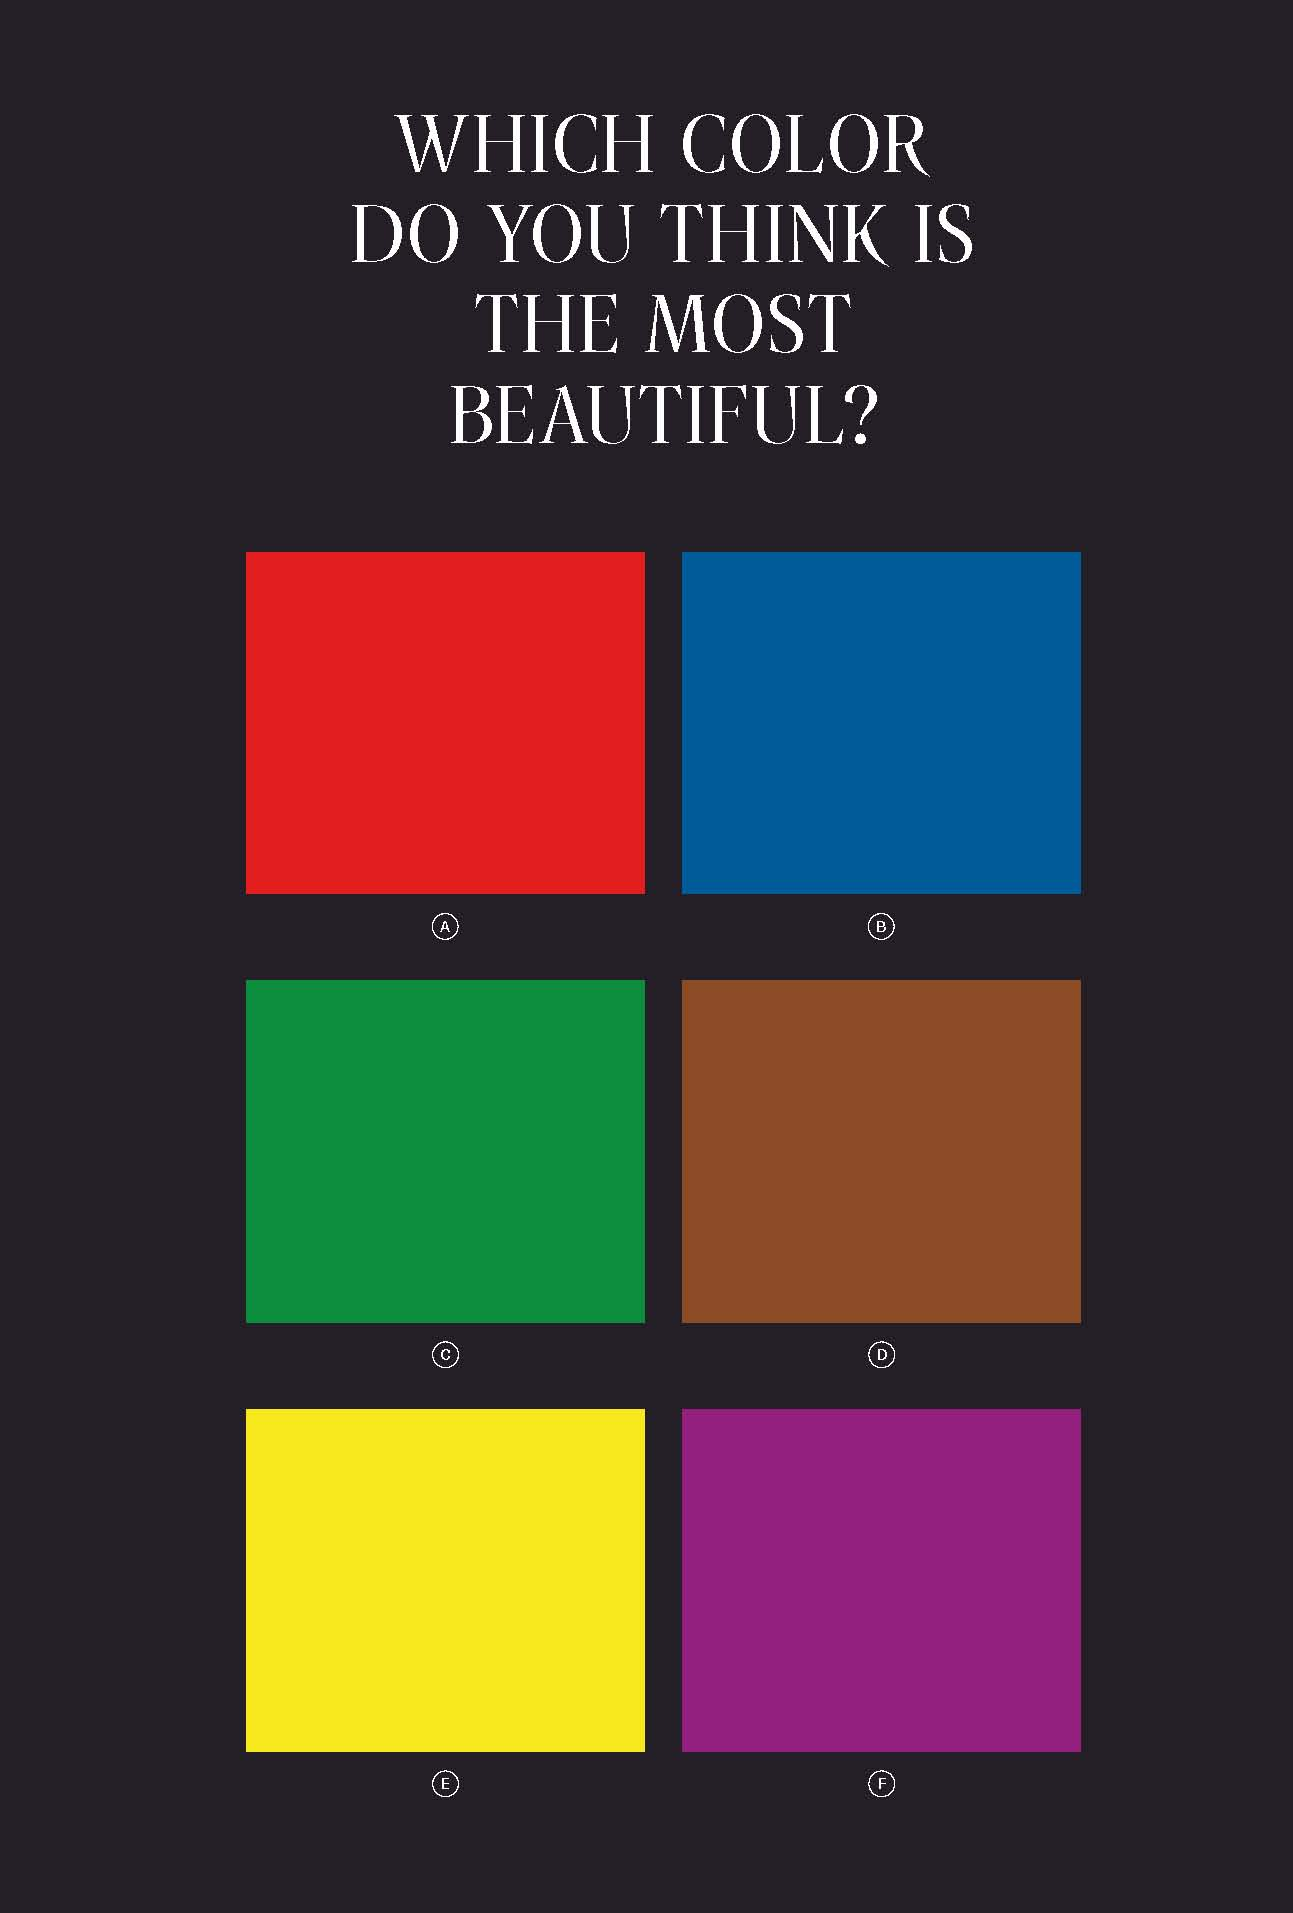 Survey question: Which Color Do You Think is the Most Beautiful? Picture credit: © Sagmeister & Walsh